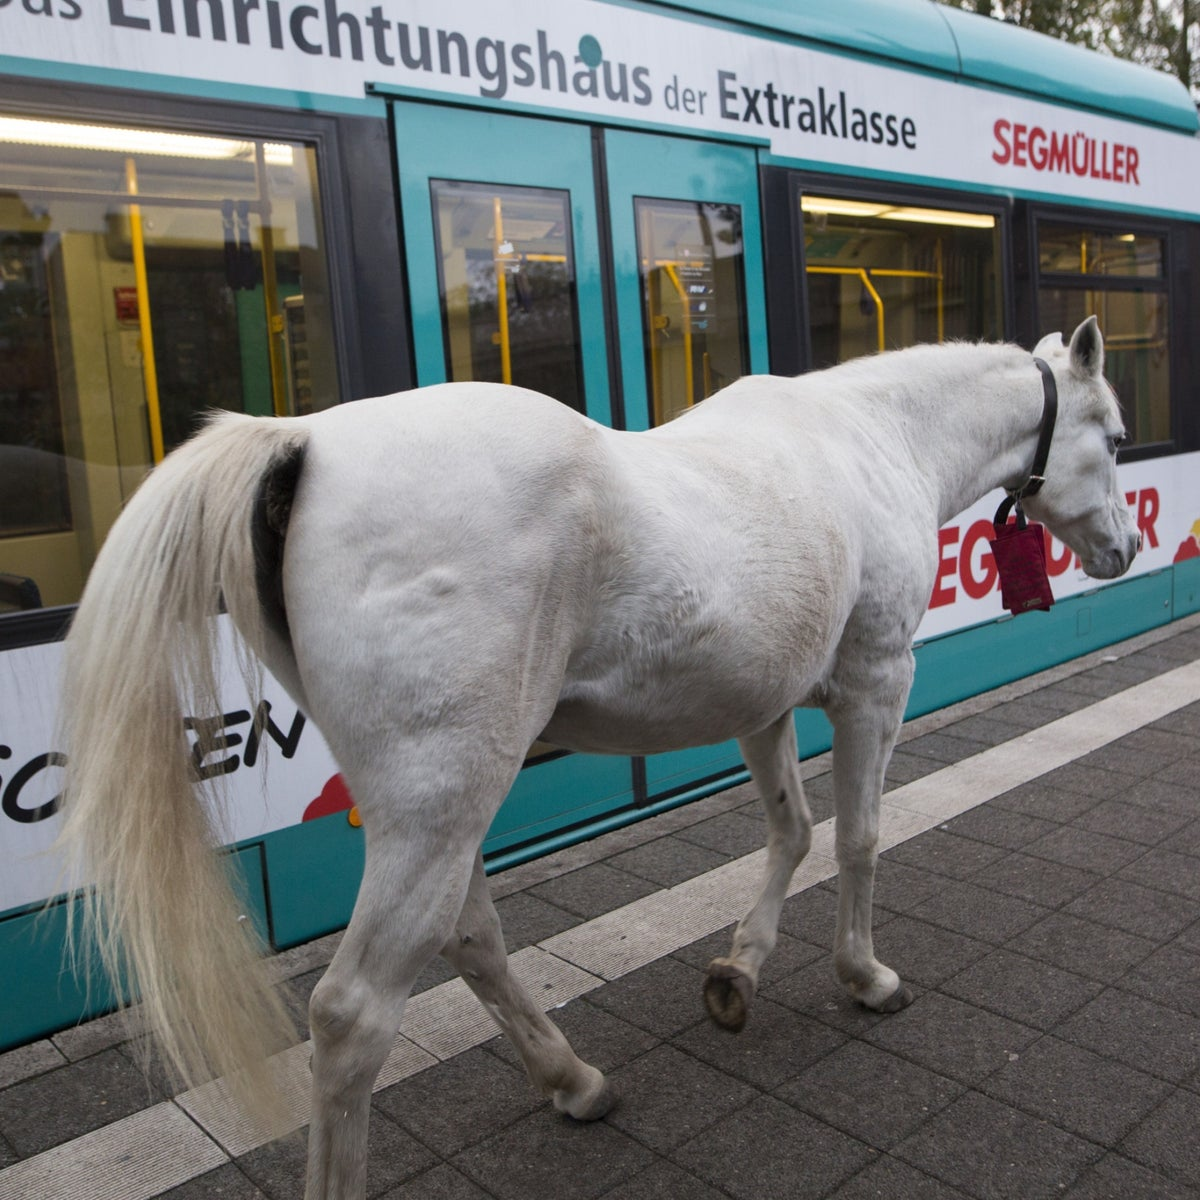 Jenny the Arabian mare is walking by a tram in Frankfurt's Fechenheim district, Germany, 2020.